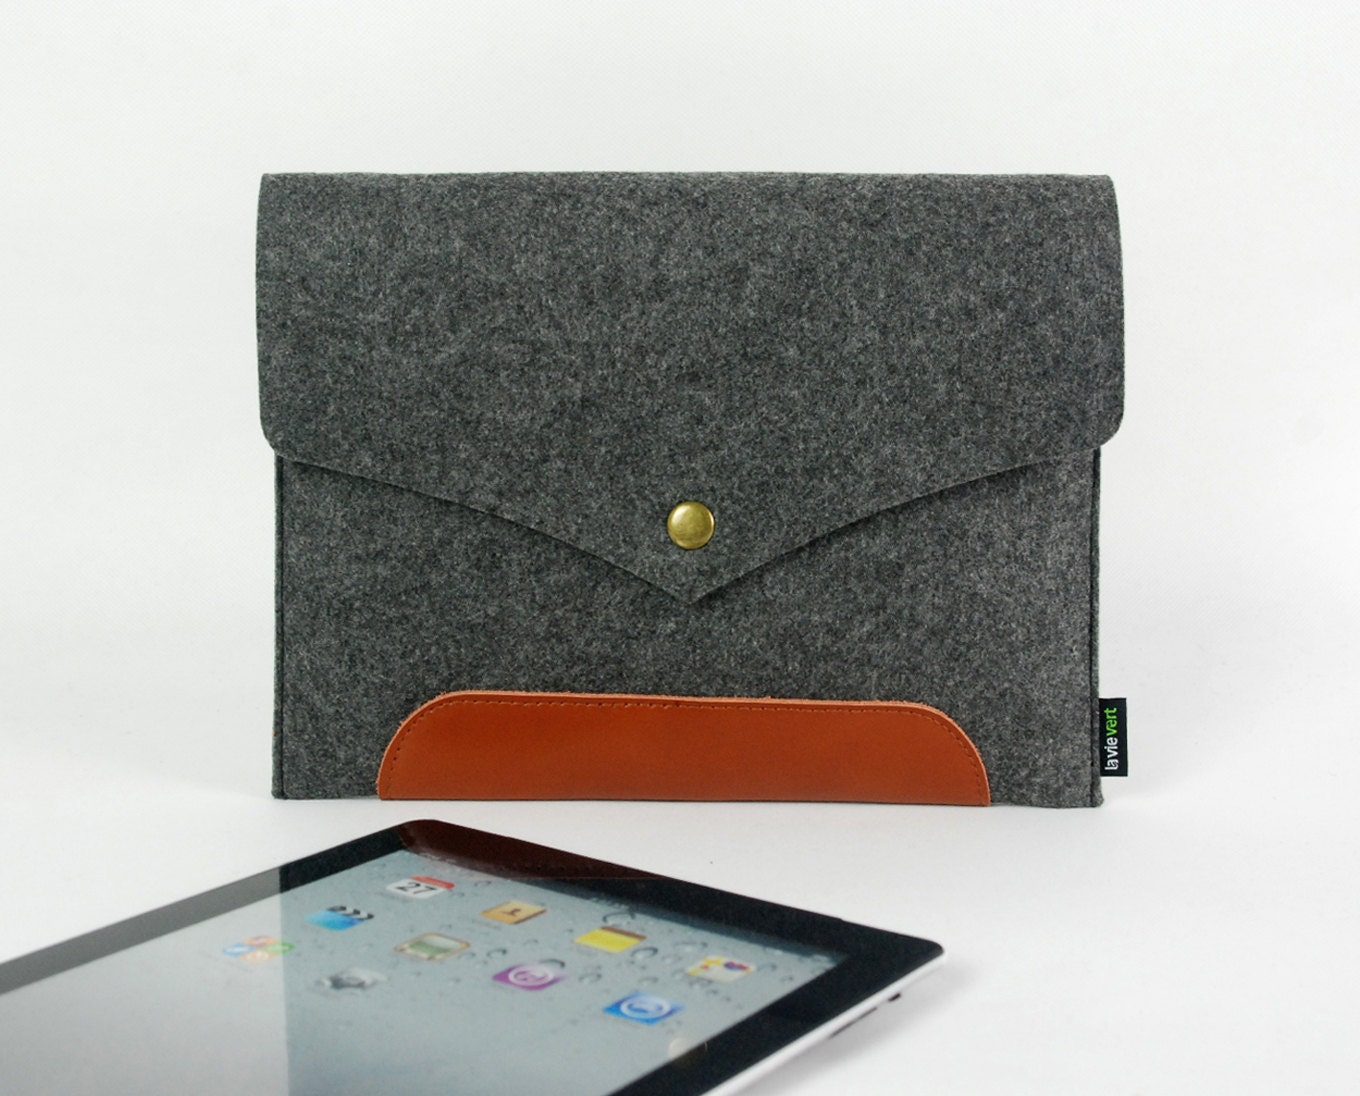 Genuine Leather Hand Made Grey Felt iPad Case iPad Sleeve iPad Cover iPad Holder Real Leather Handmade ipad 1 2 new ipad :E1137-MGra01